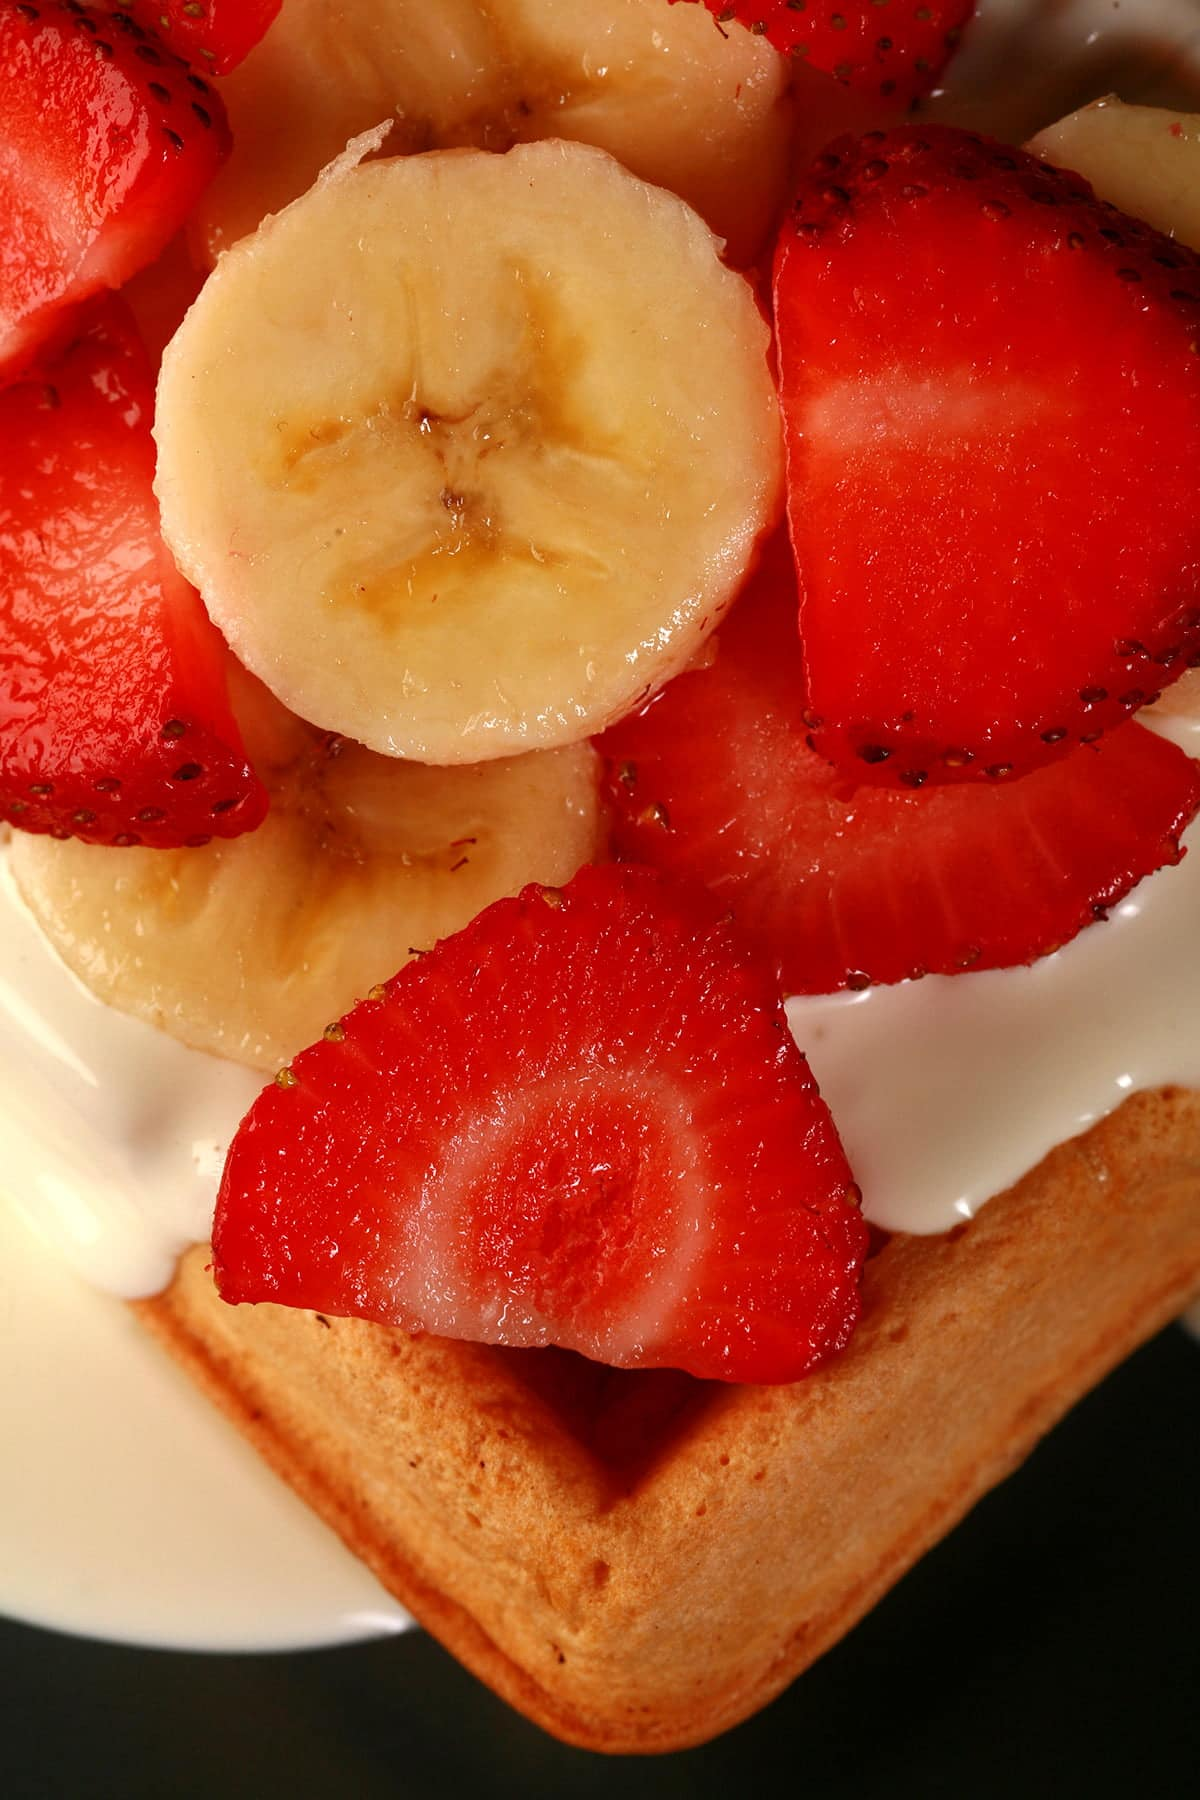 2 Ambrosia Belgian waffles - Belgian waffles with cream cheese sauce, topped with sliced strawberries and sliced bananas - on a blue plate.